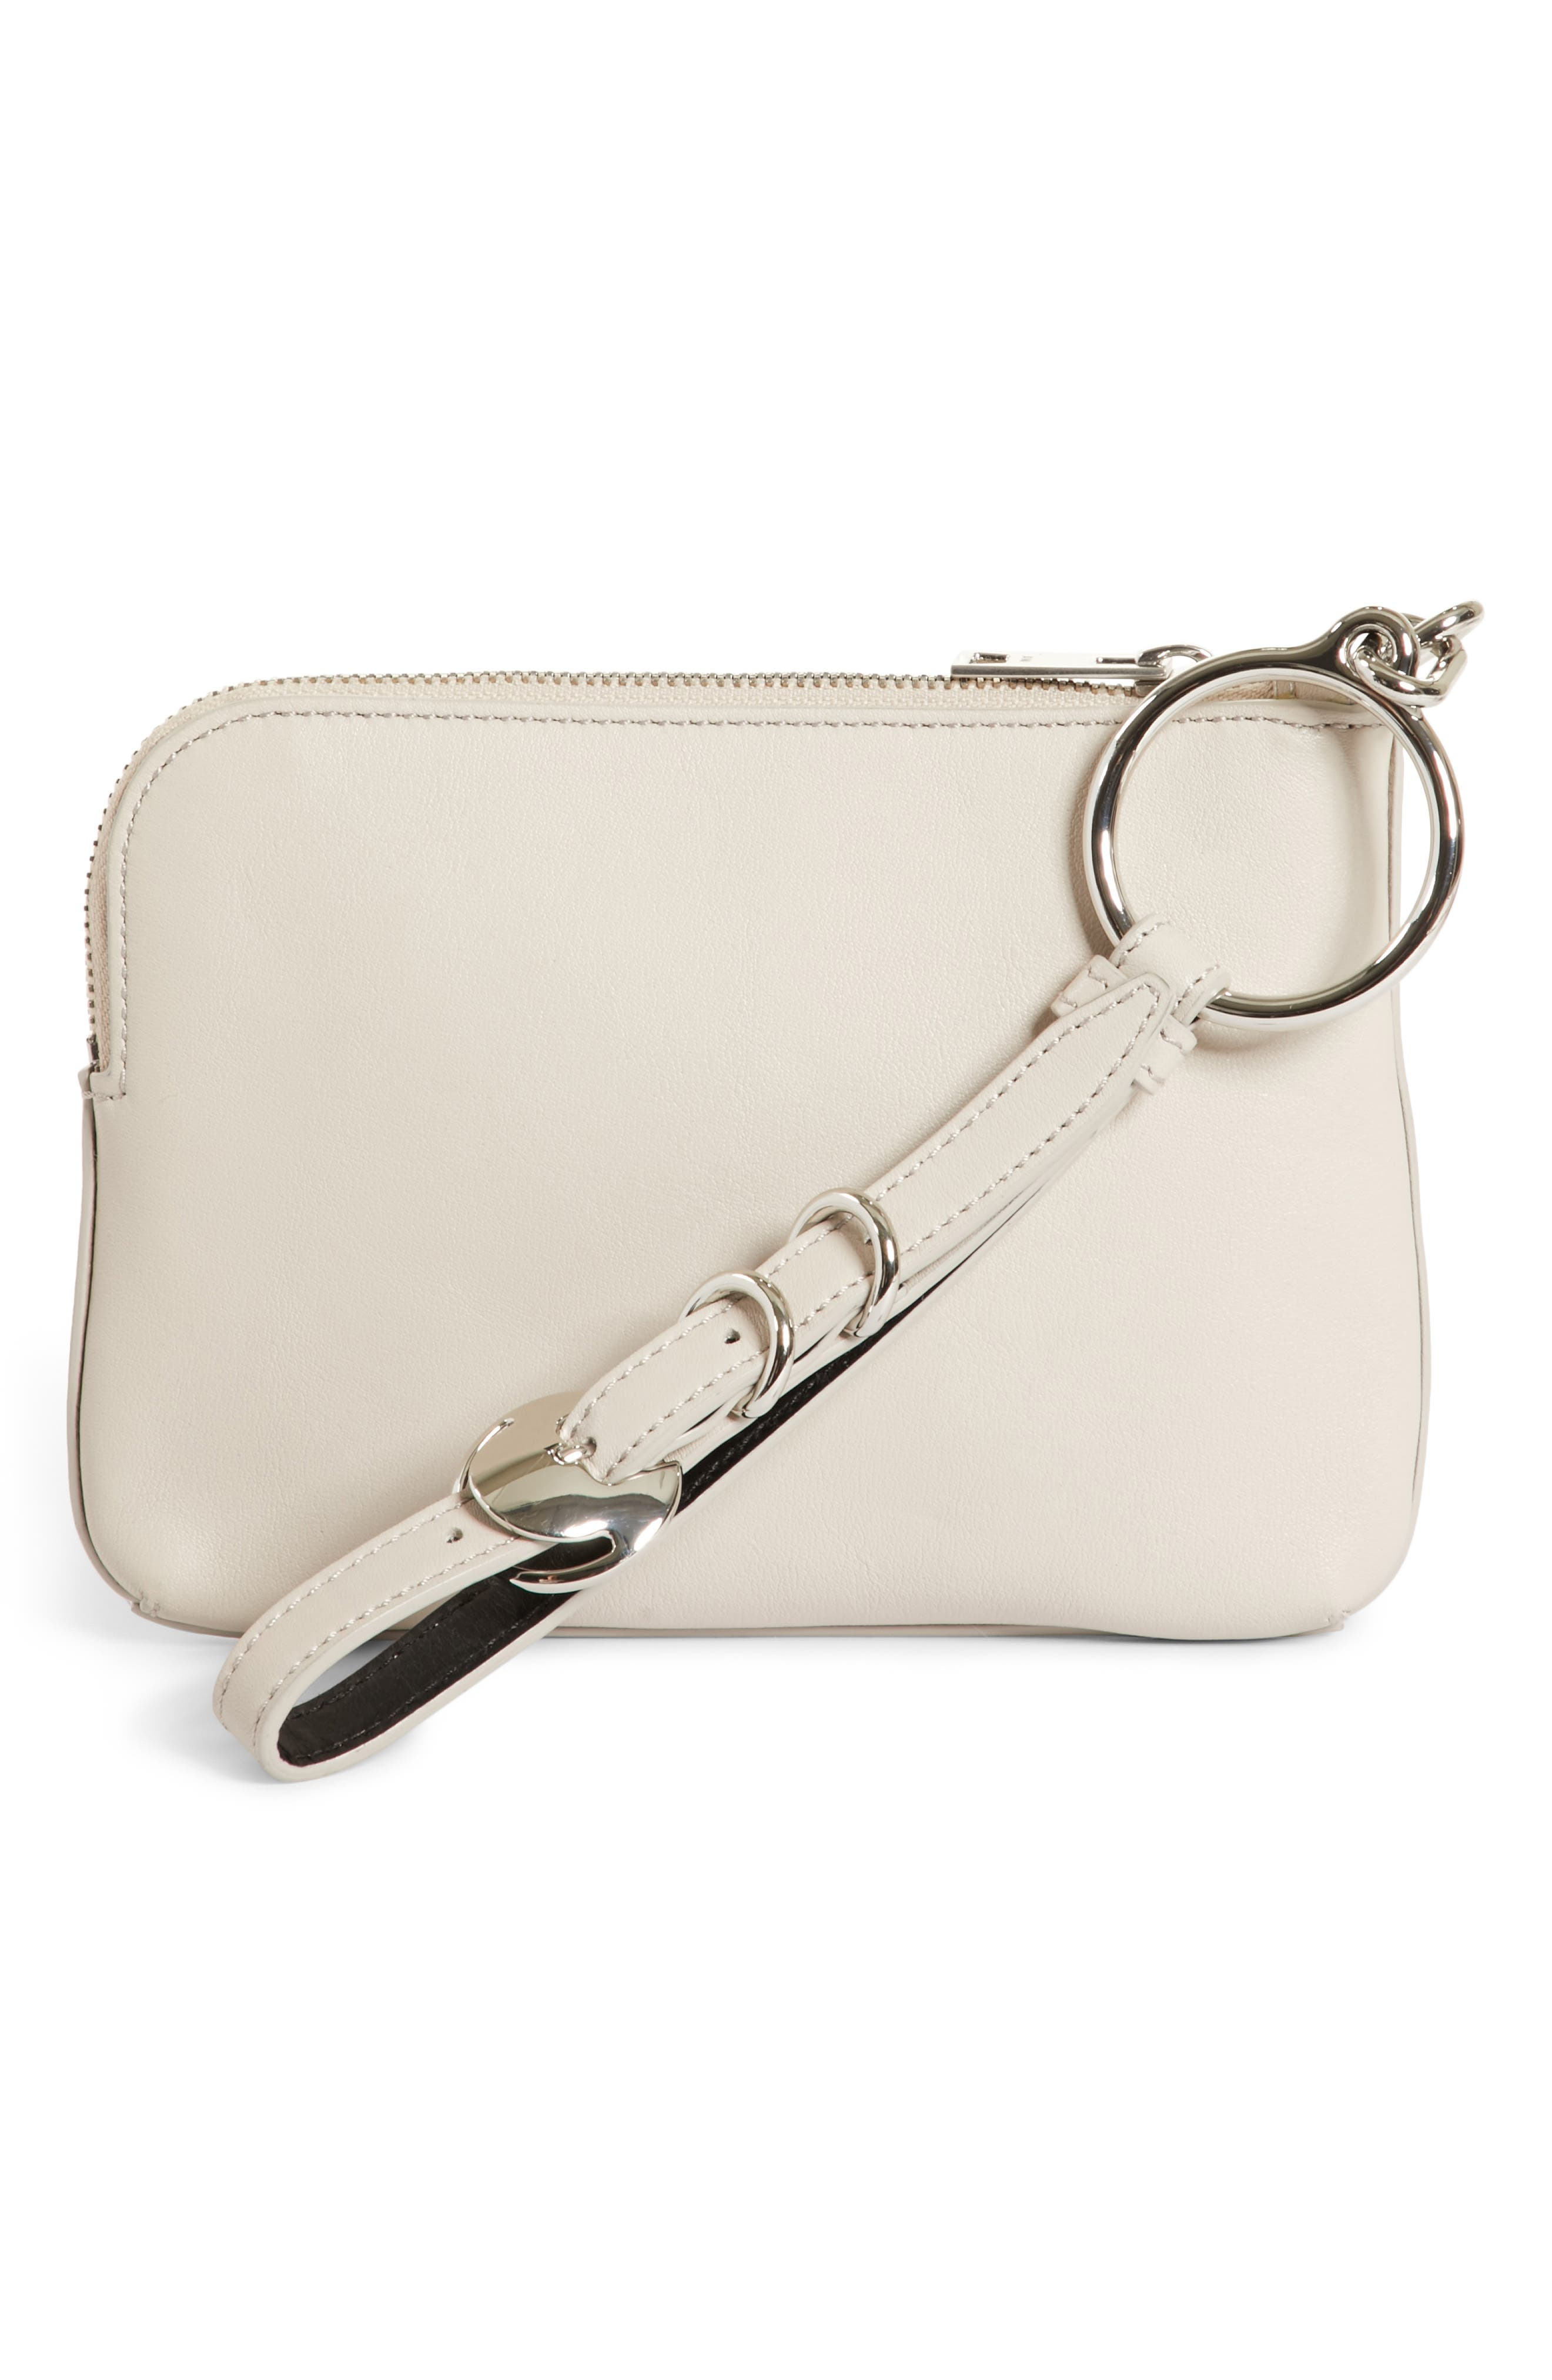 Small Ace Leather Wristlet,                             Alternate thumbnail 4, color,                             110